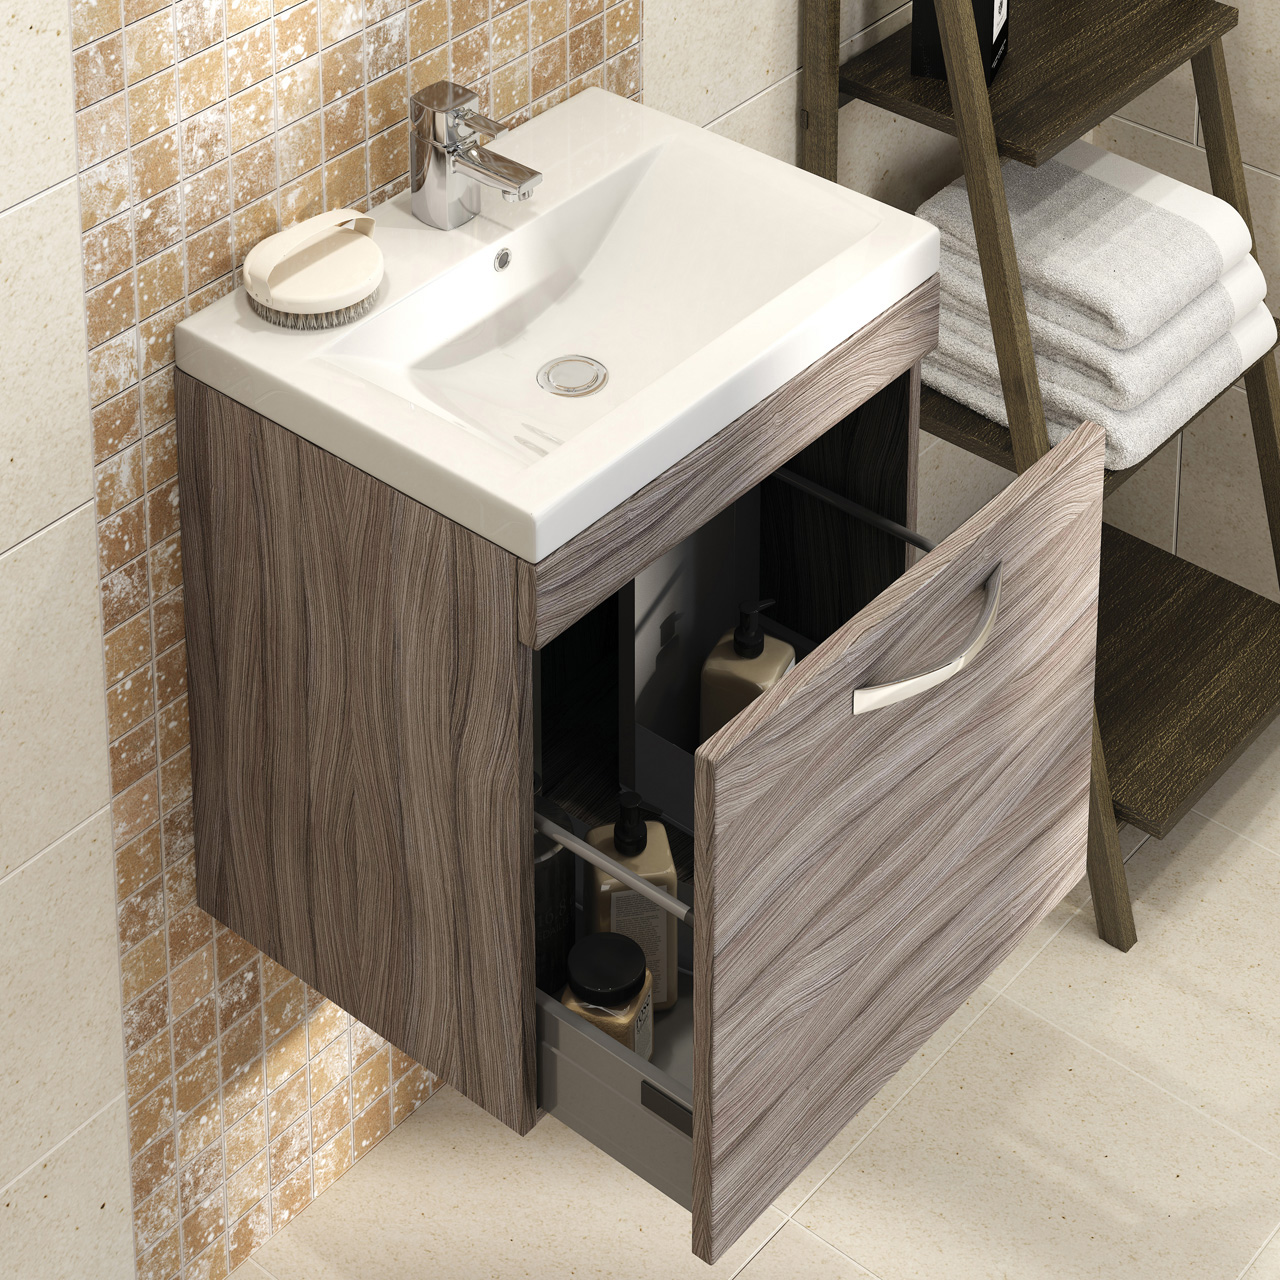 Premier Shipton Driftwood Wall Hung 600mm Cabinet & Basin - DK61DW ...